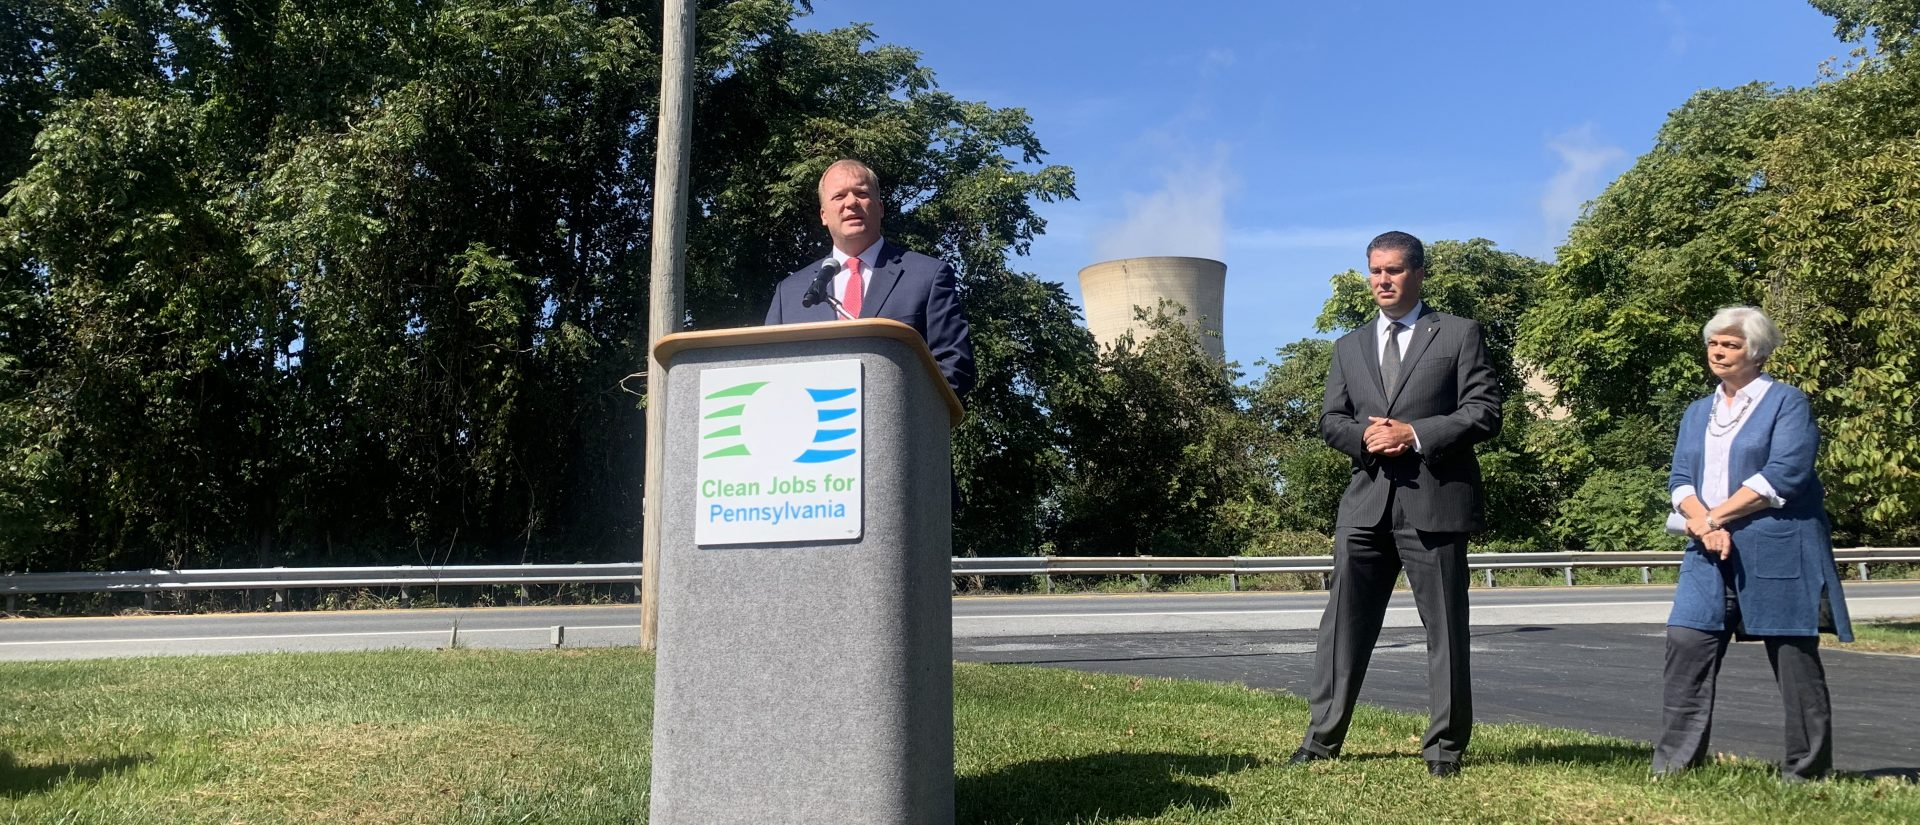 With TMI closed, nuclear advocates' concern shifts to Pa.'s other plants | WITF